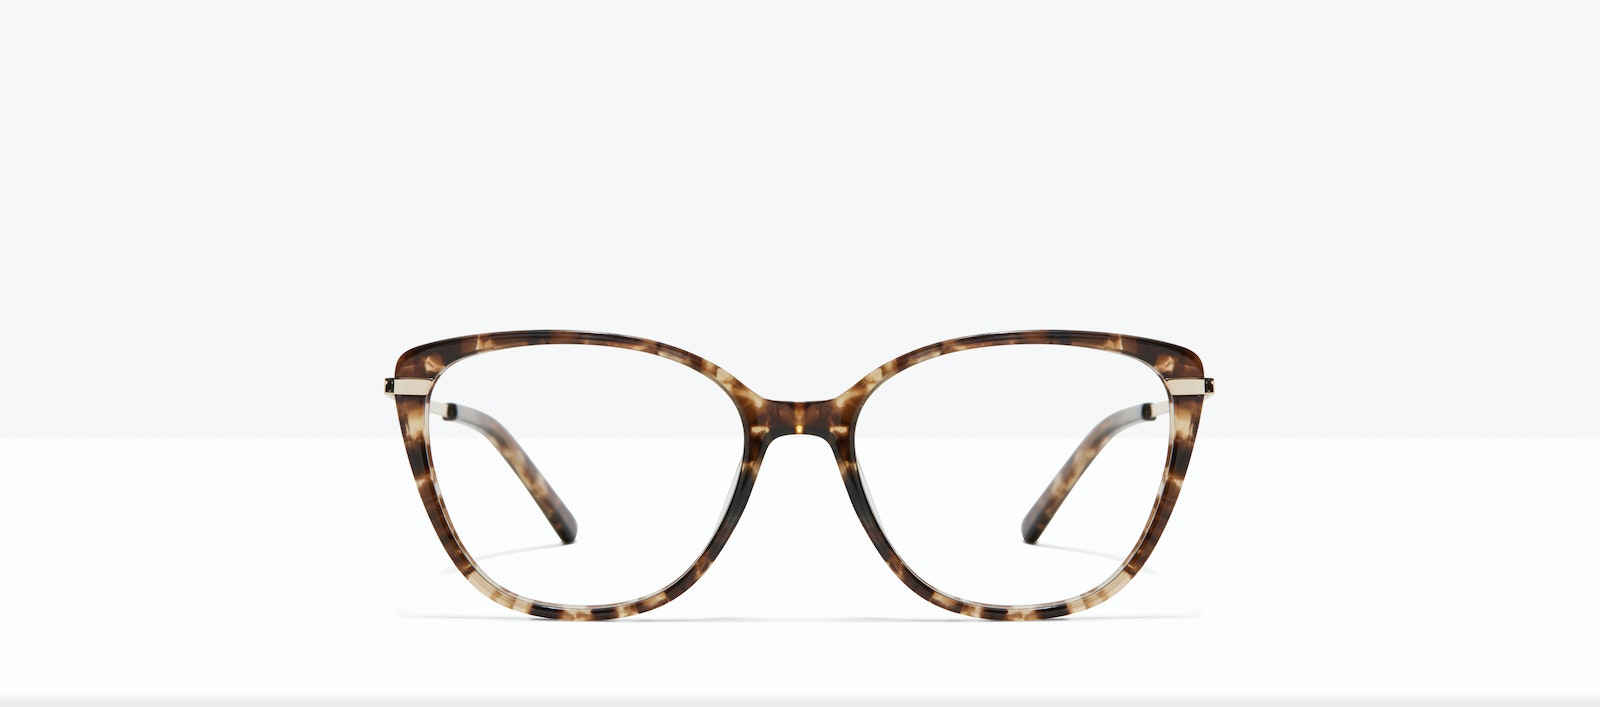 Affordable Fashion Glasses Rectangle Square Eyeglasses Women Illusion L Leopard Front